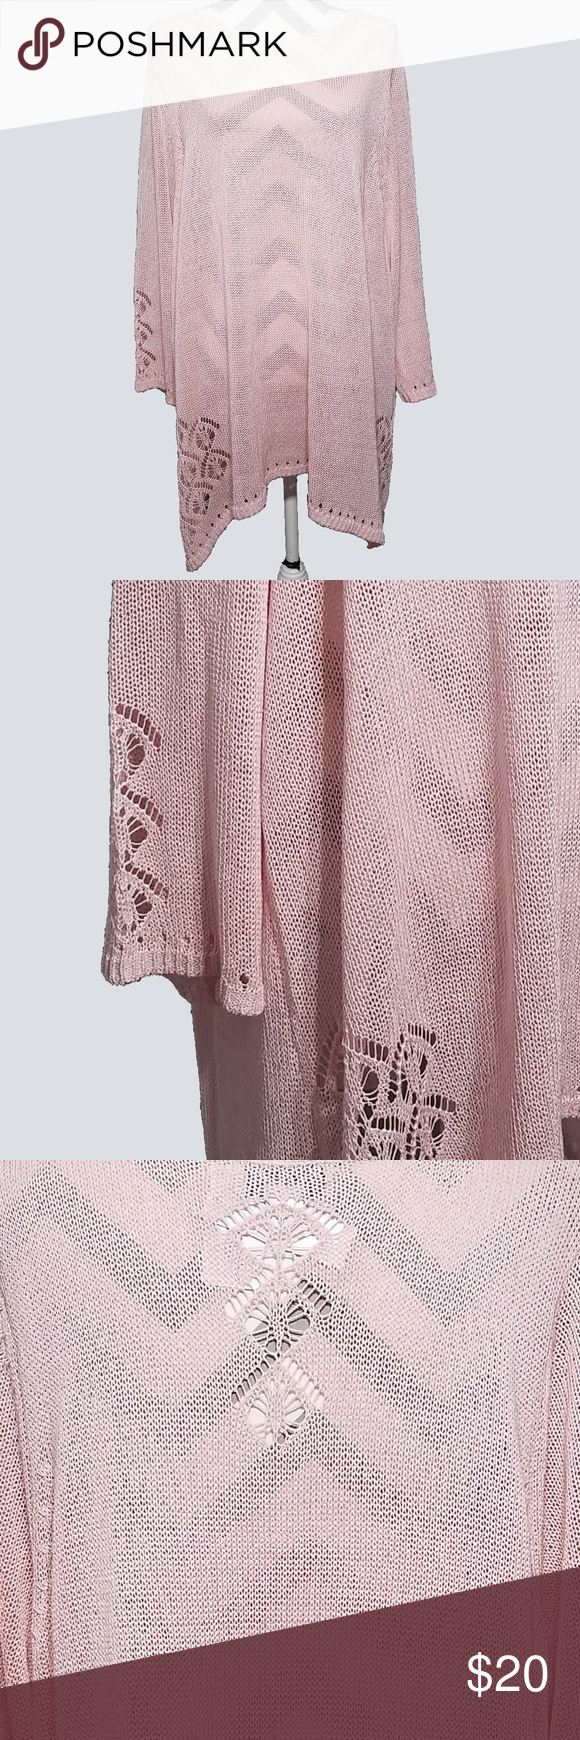 81cd605247b CJ Banks Pink Eyelet Sweater 3 4 Sleeve 3X CJ Banks Womens Sweater 3X Pink  Knit Lace Eyelet 3 4 Sleeve New with tags Seam to seam across chest  28